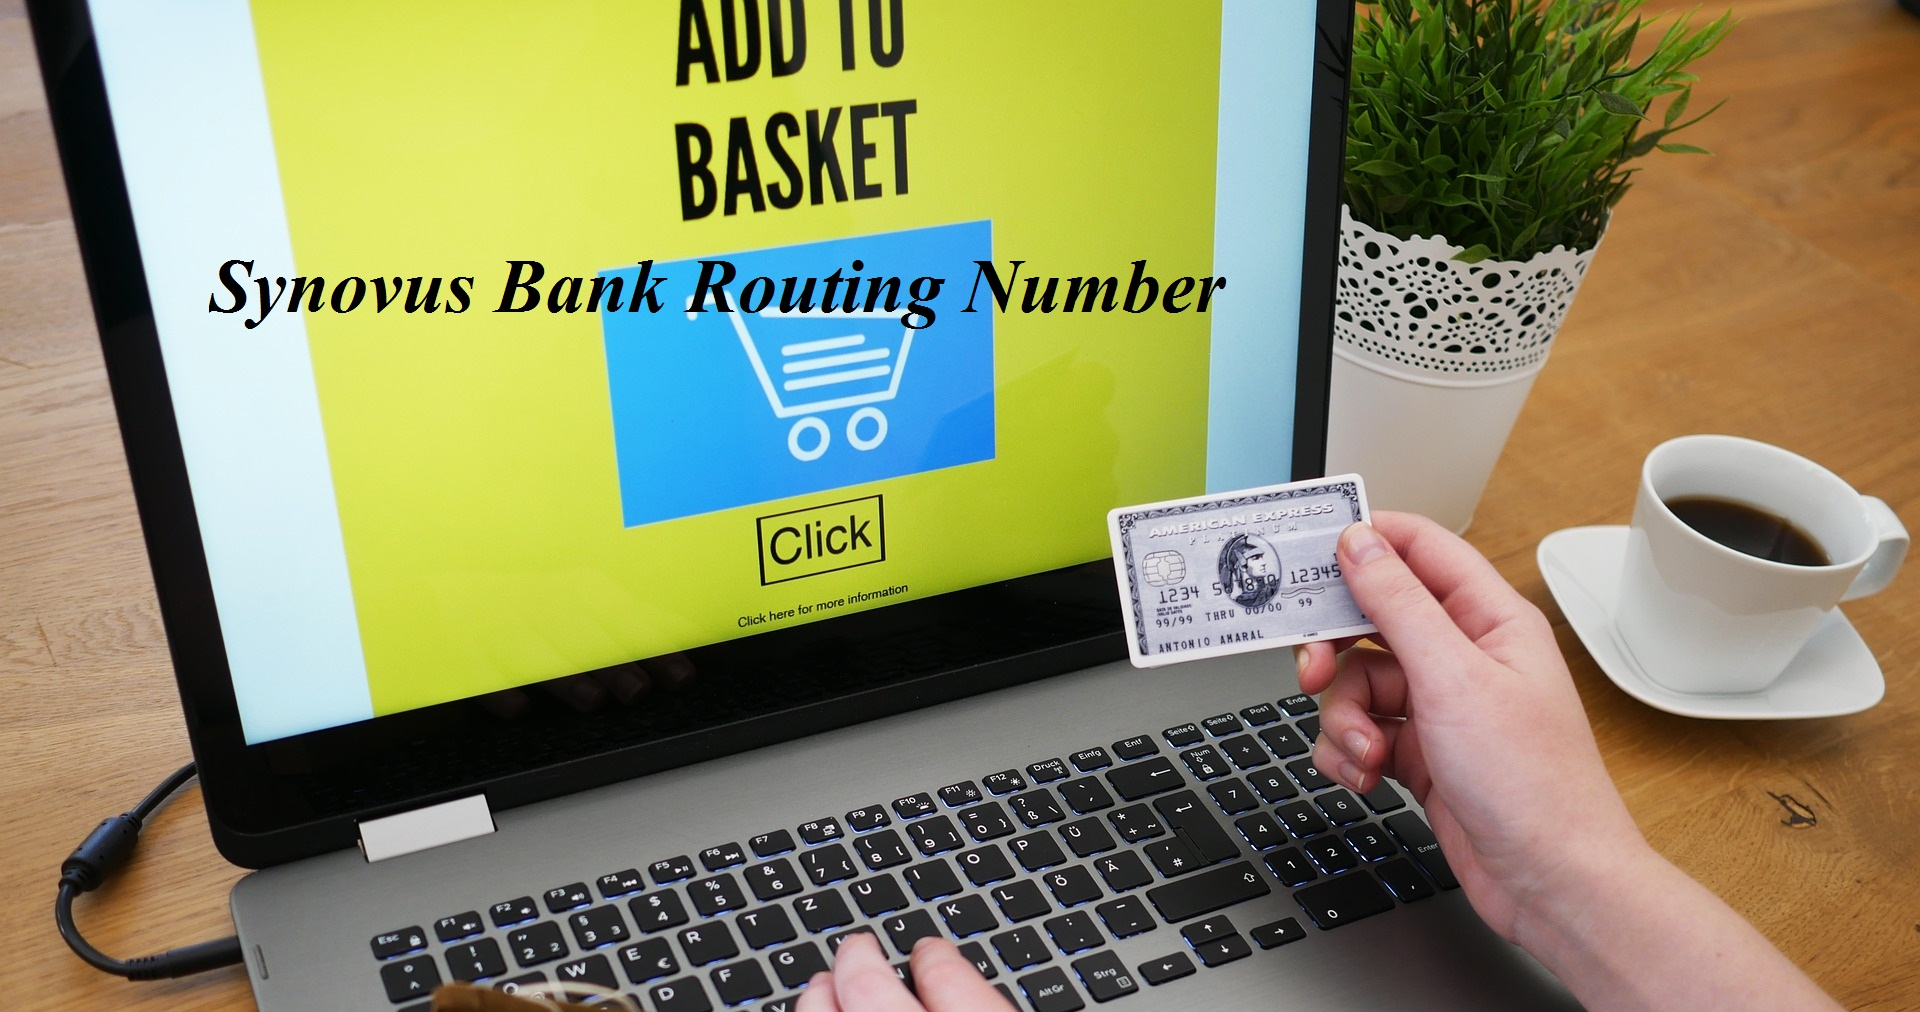 Synovus Bank Routing Number